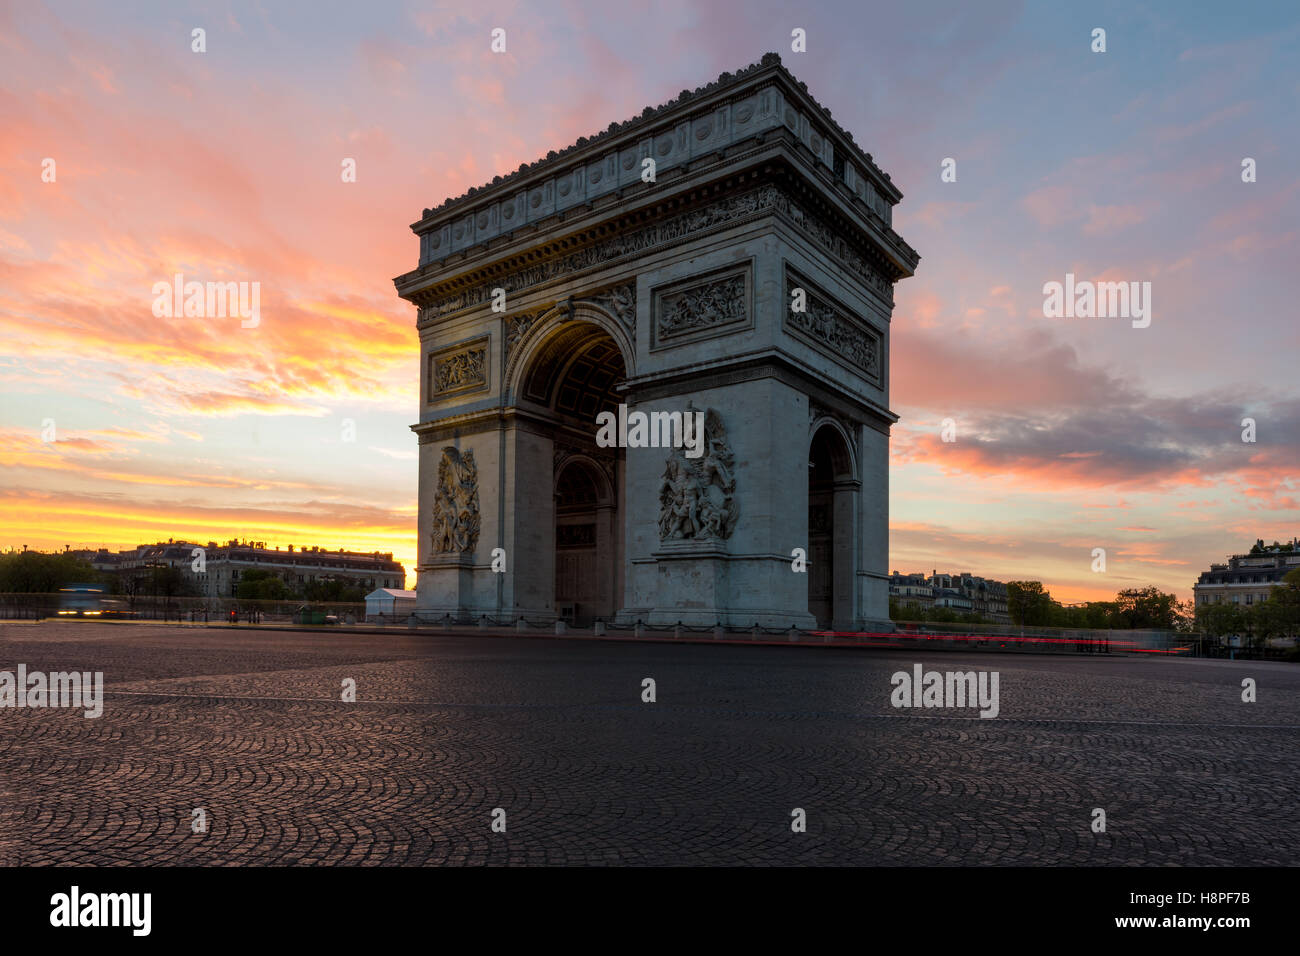 Arc de Triomphe and Champs Elysees, Landmarks in center of Paris, at sunset. Paris, France - Stock Image